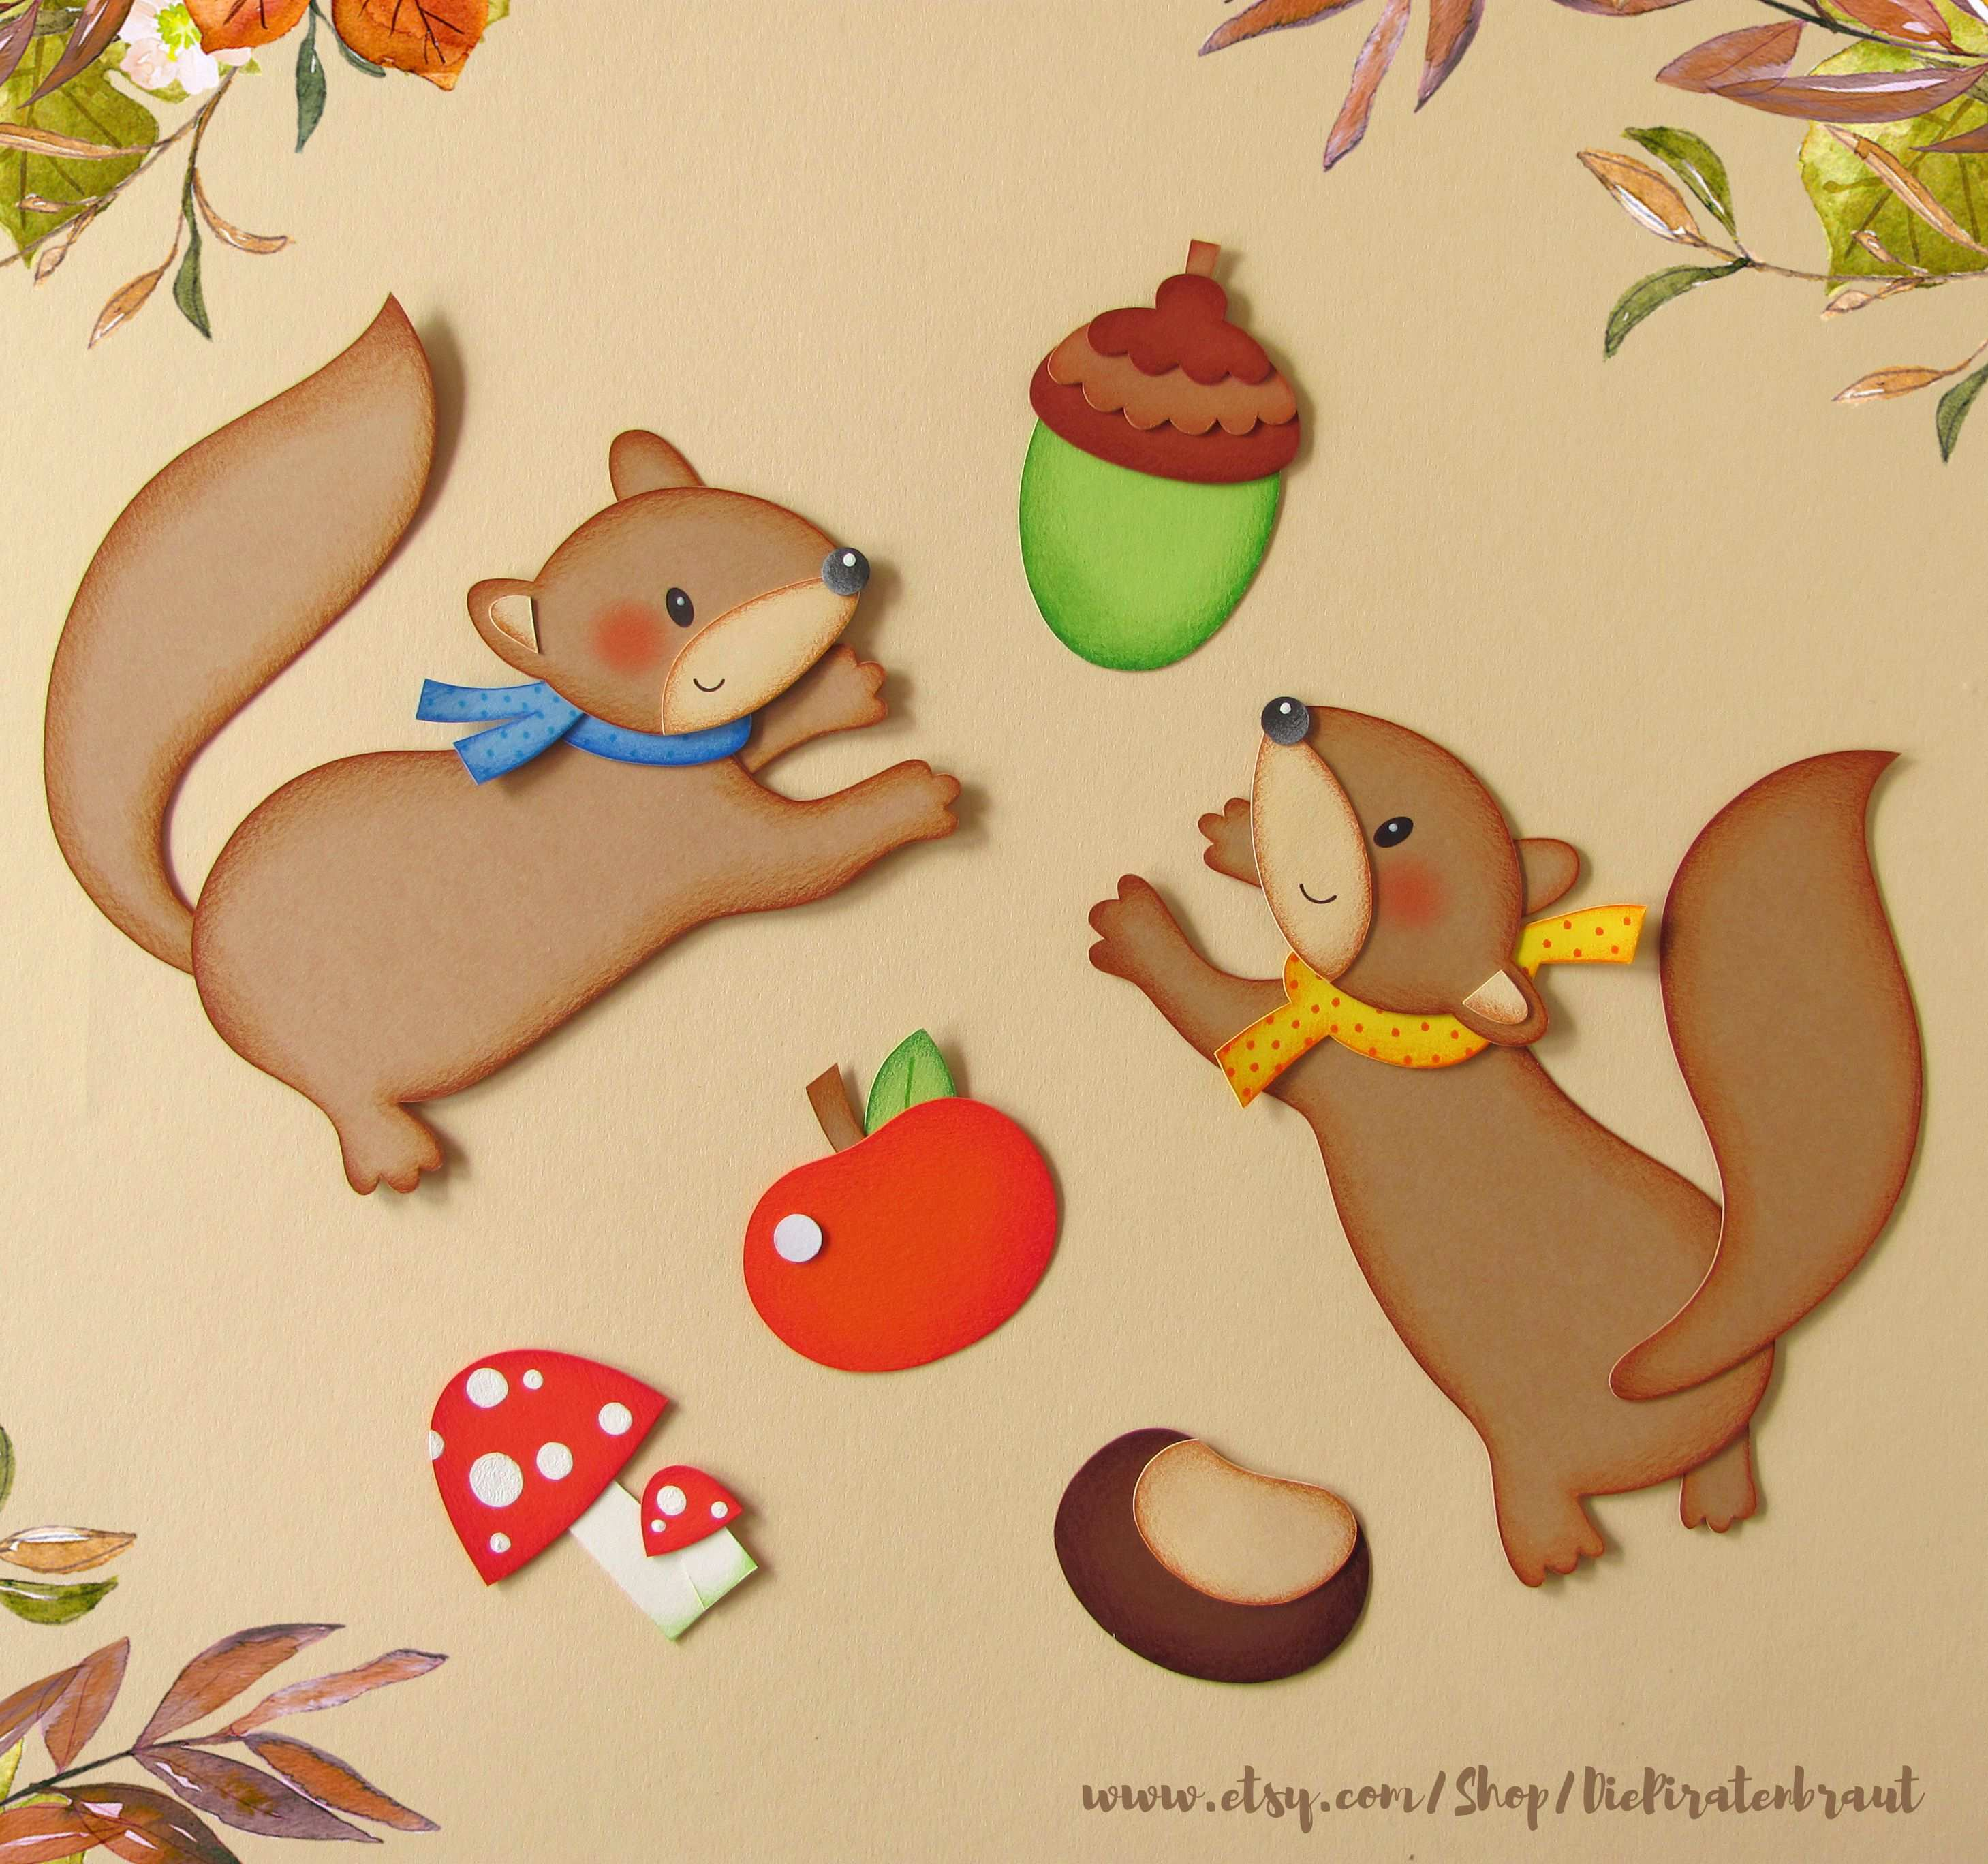 Digital Download Craft Template Window Picture Squirrels 3 Pages In 2020 Squirrel Crafts Pictures